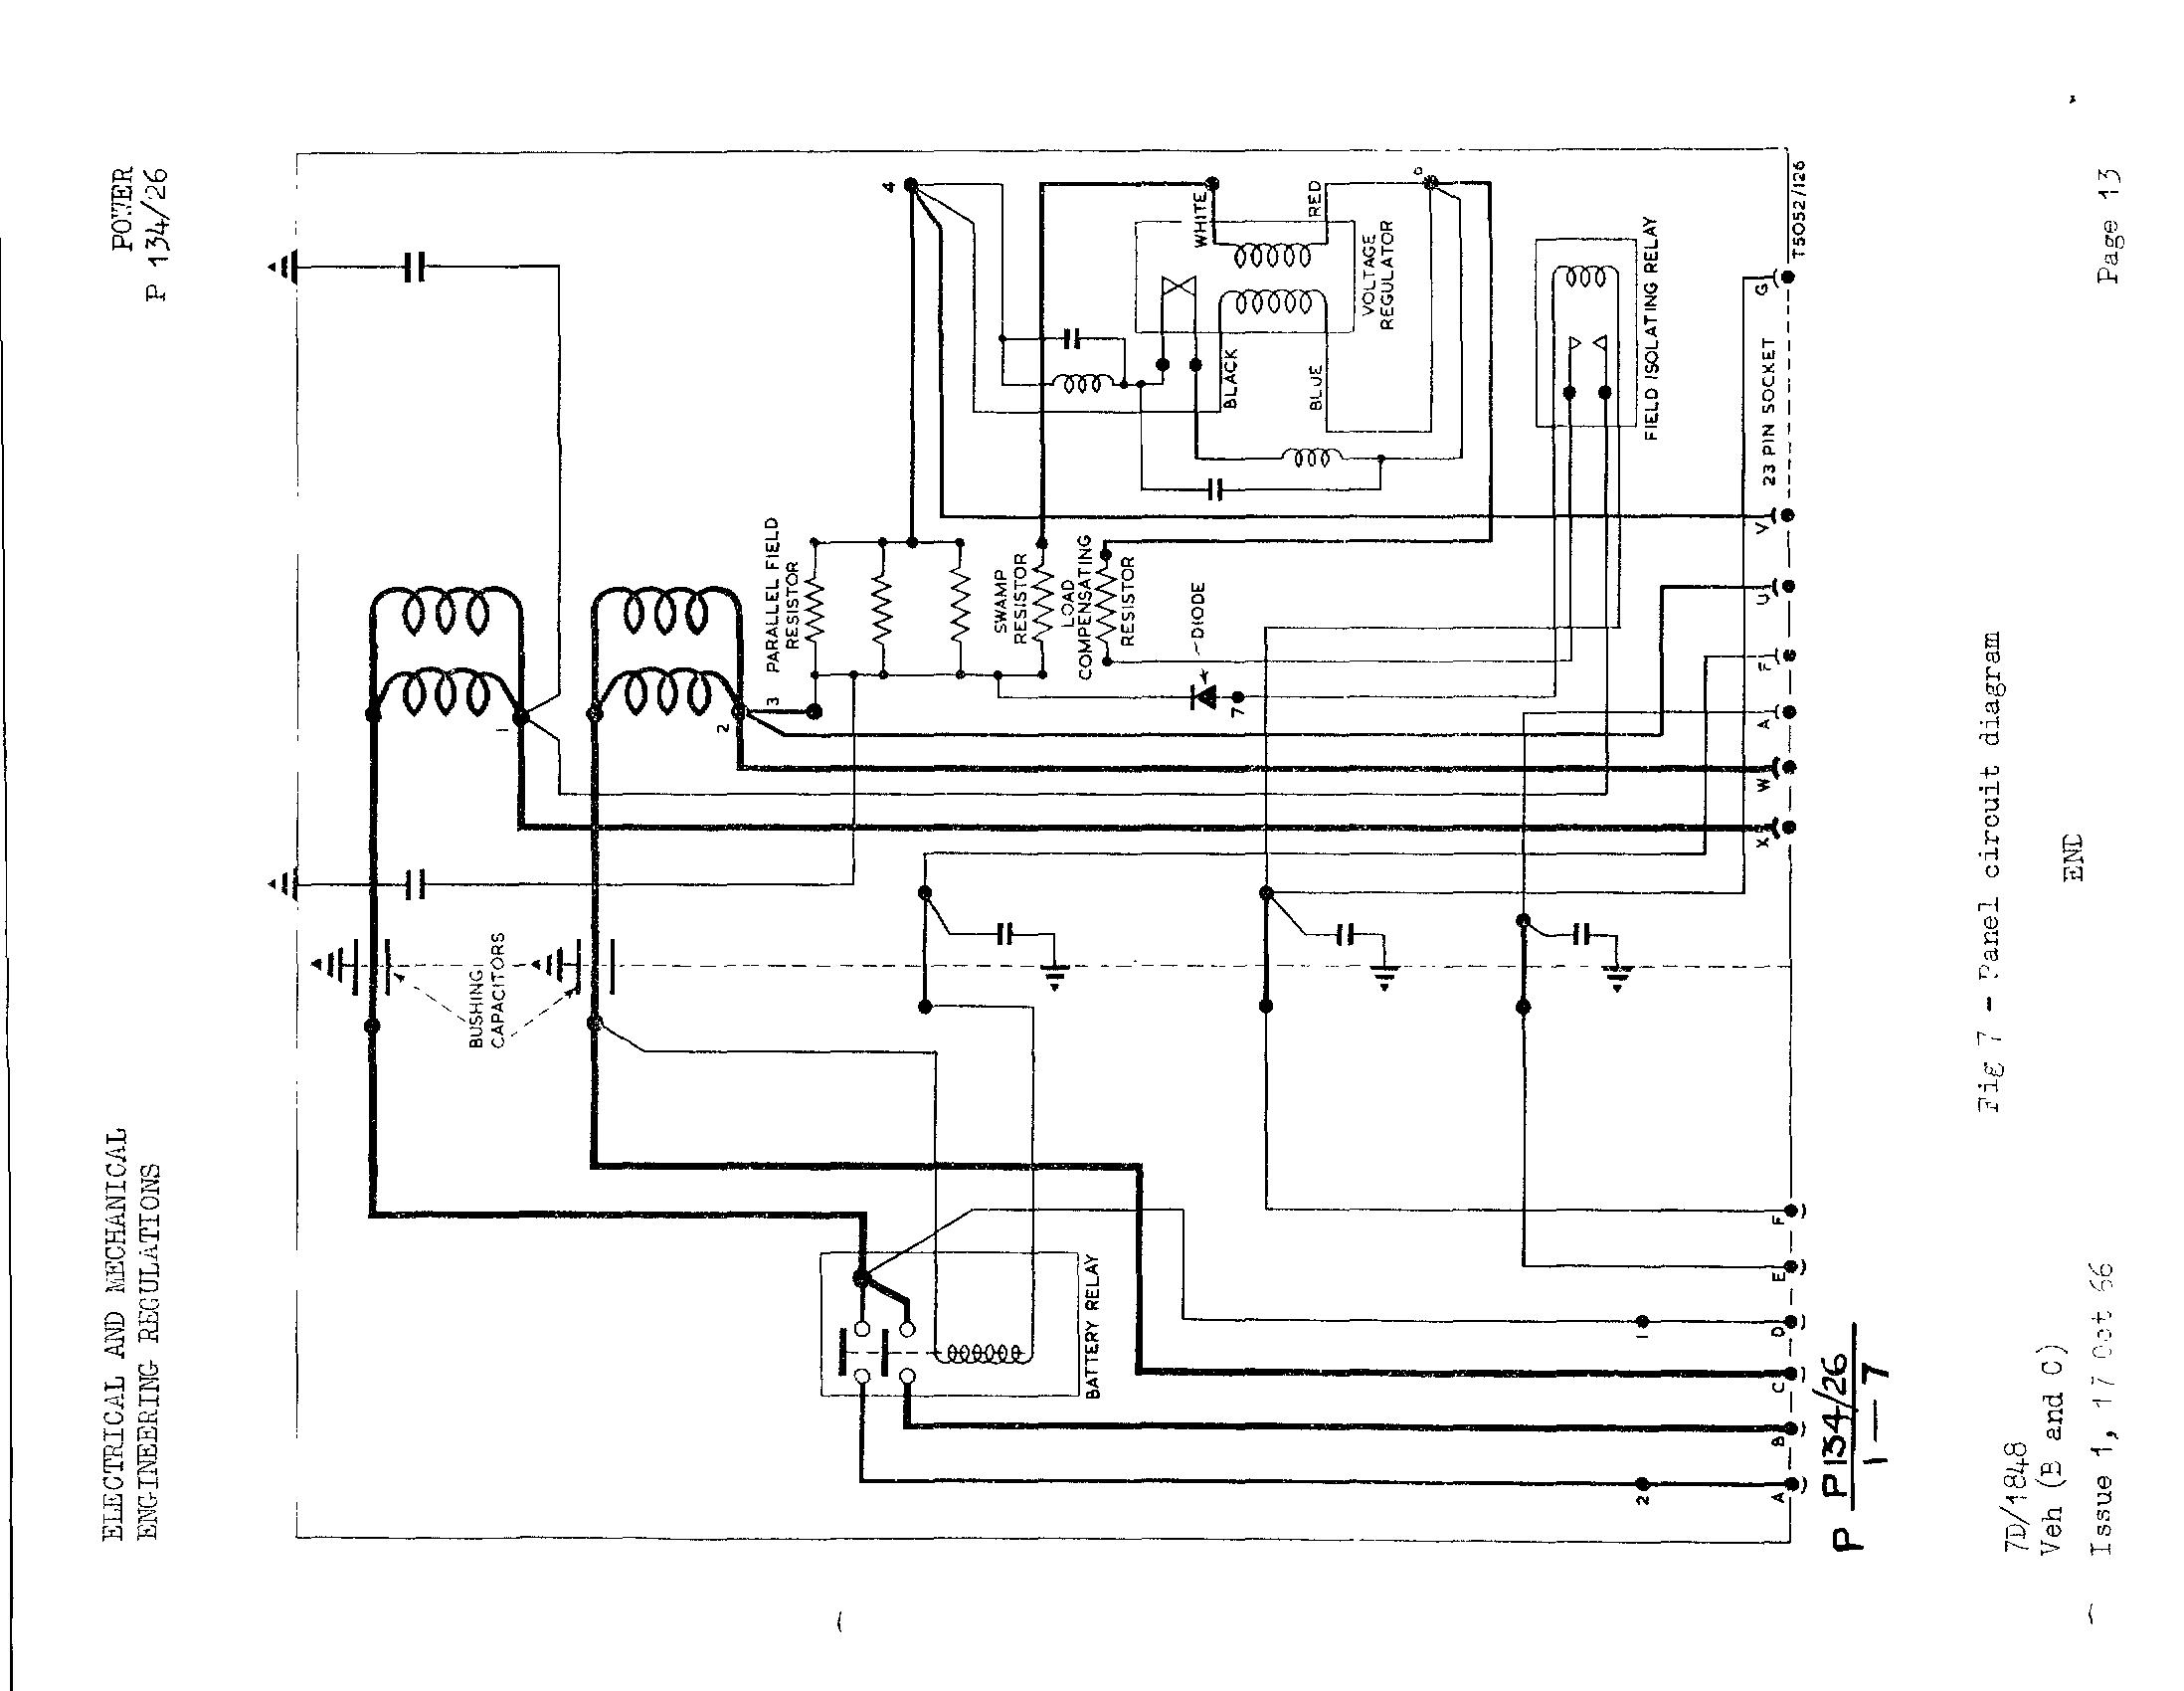 Onan Voltage Regulator Schematic http://www.winwaed.com/landy/mil/military.shtml